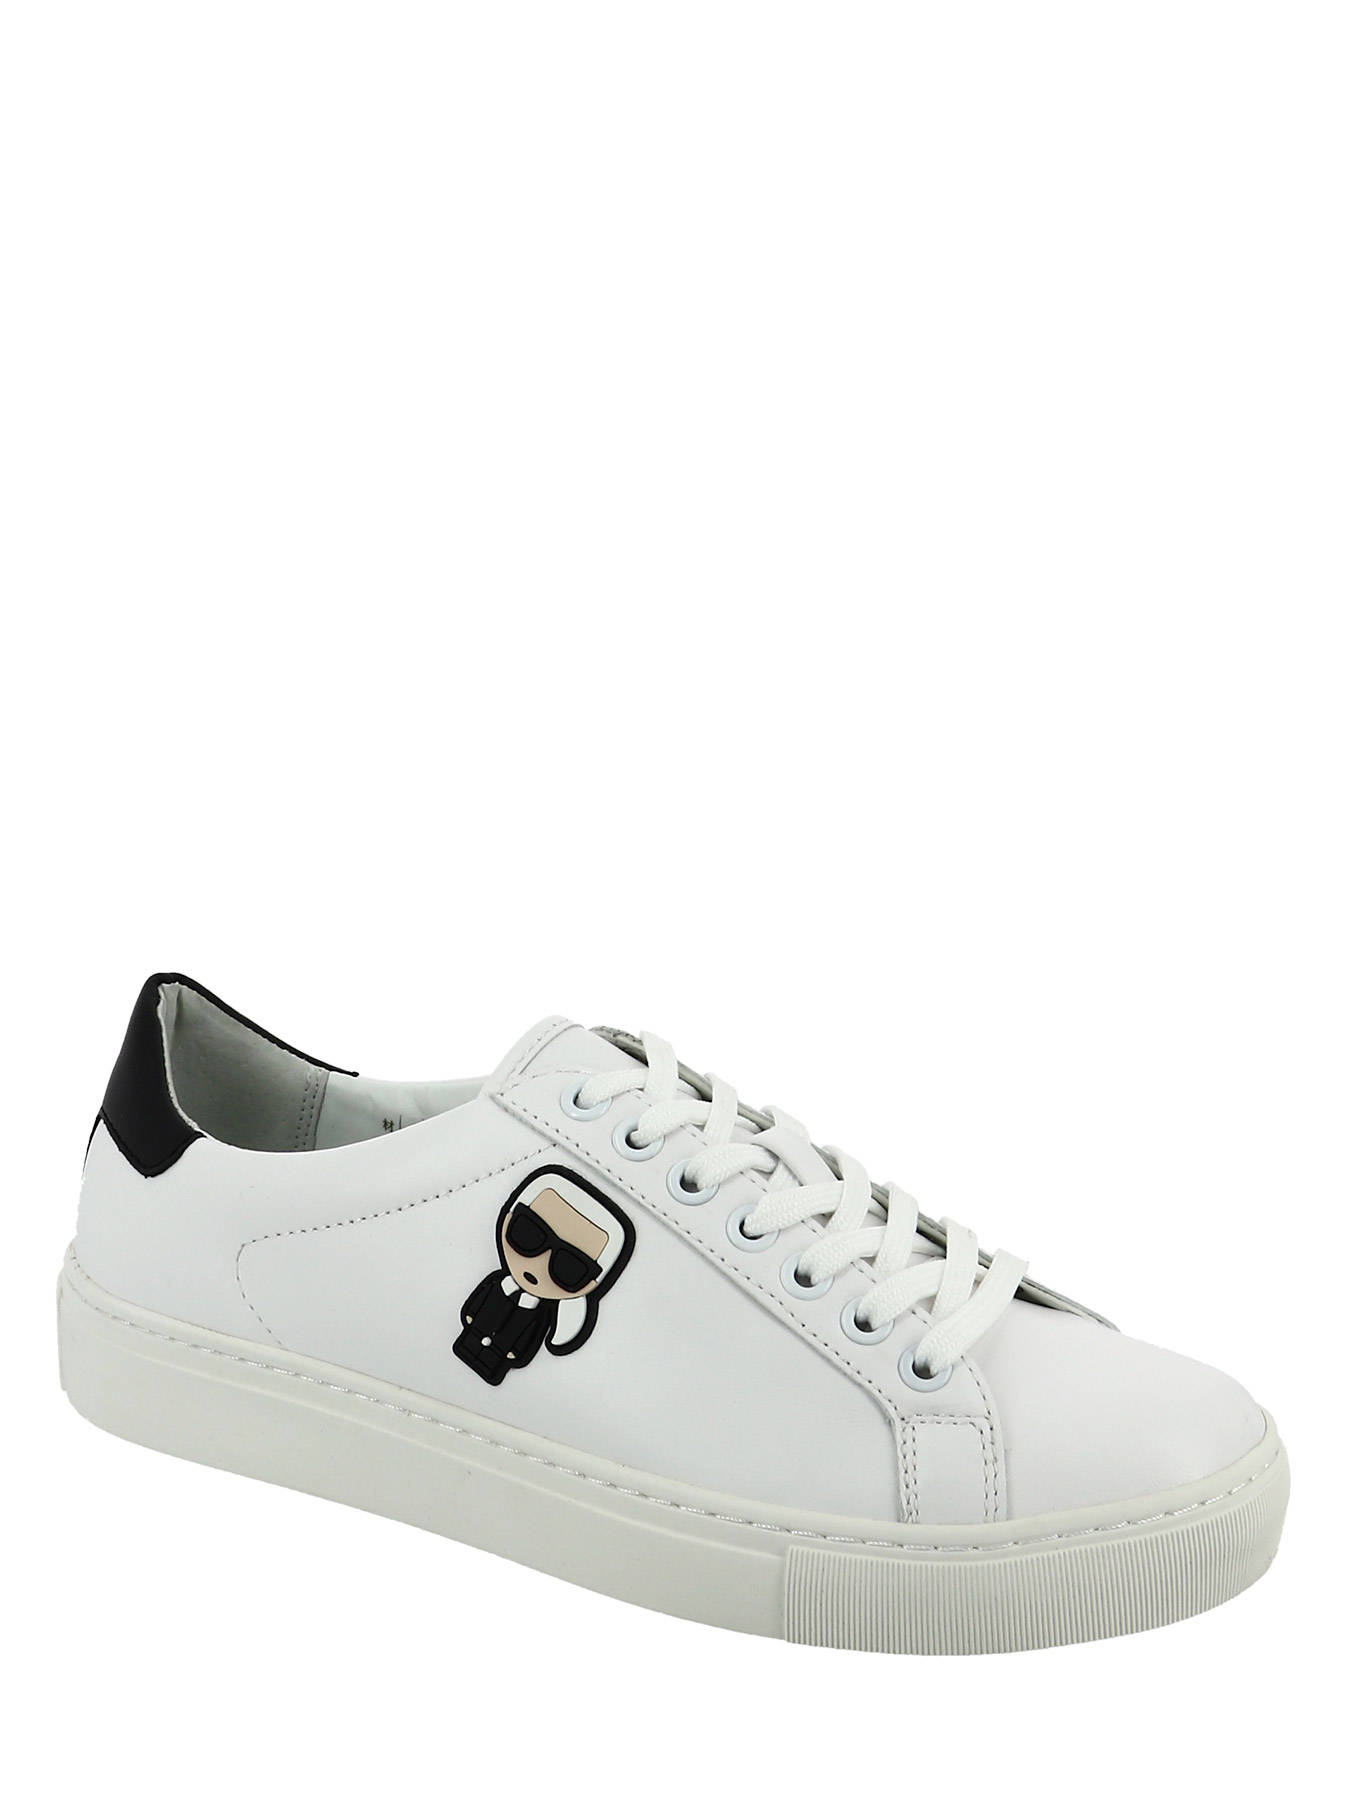 Available Free Lagerfeld Karl 0kl61030 Shipping Sneakers 80PknOw